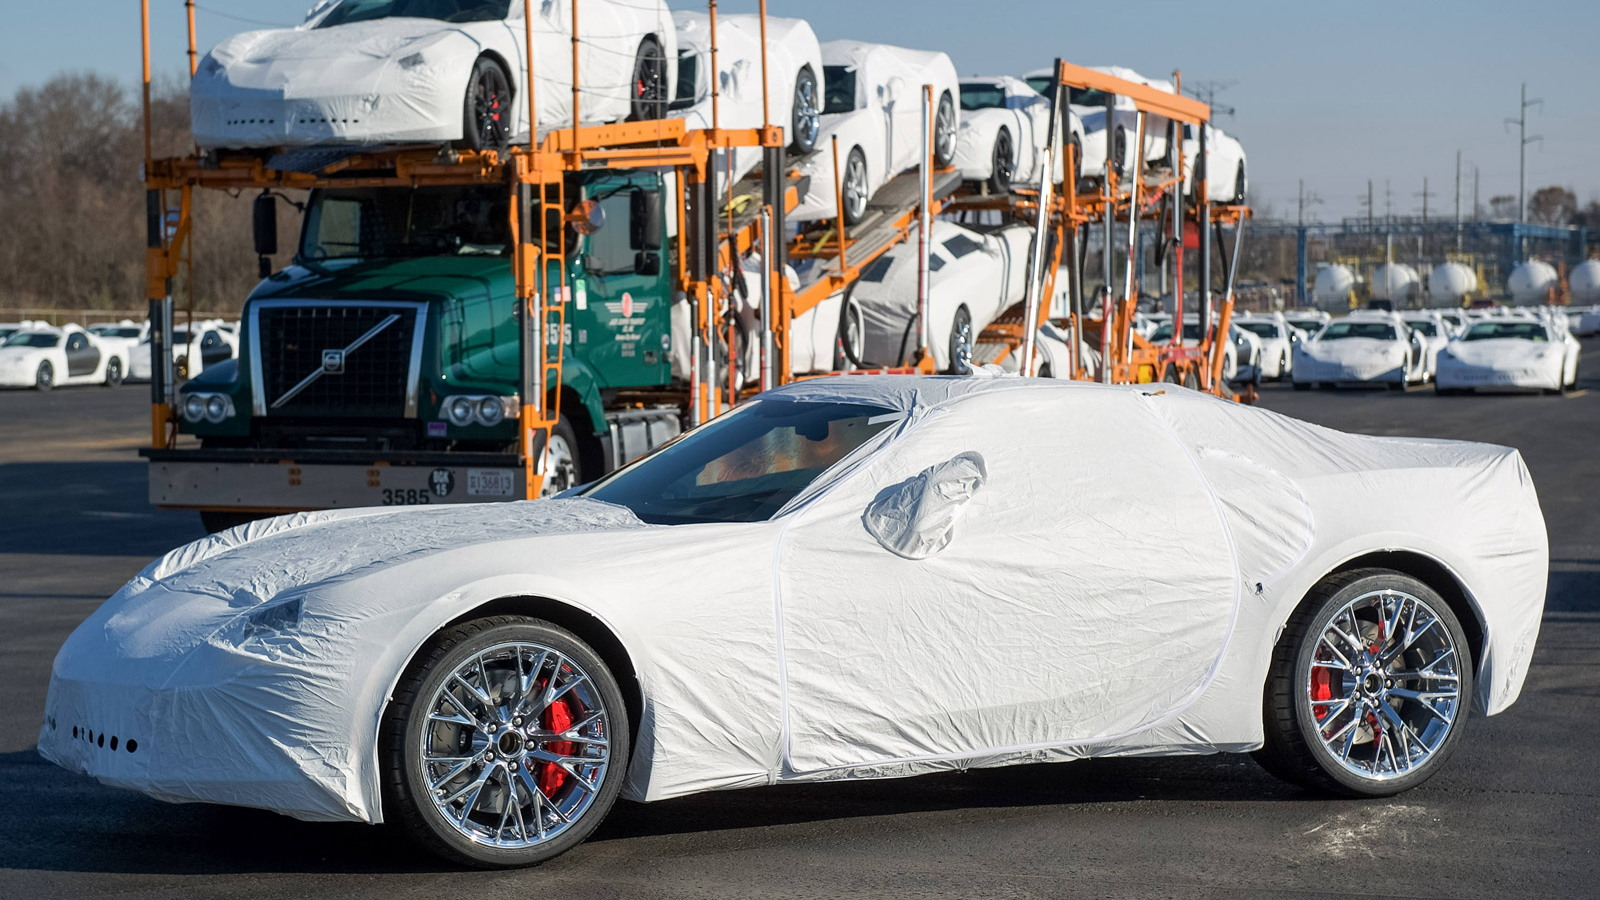 2015 Chevrolet Corvette Z06 being shipped out to dealers